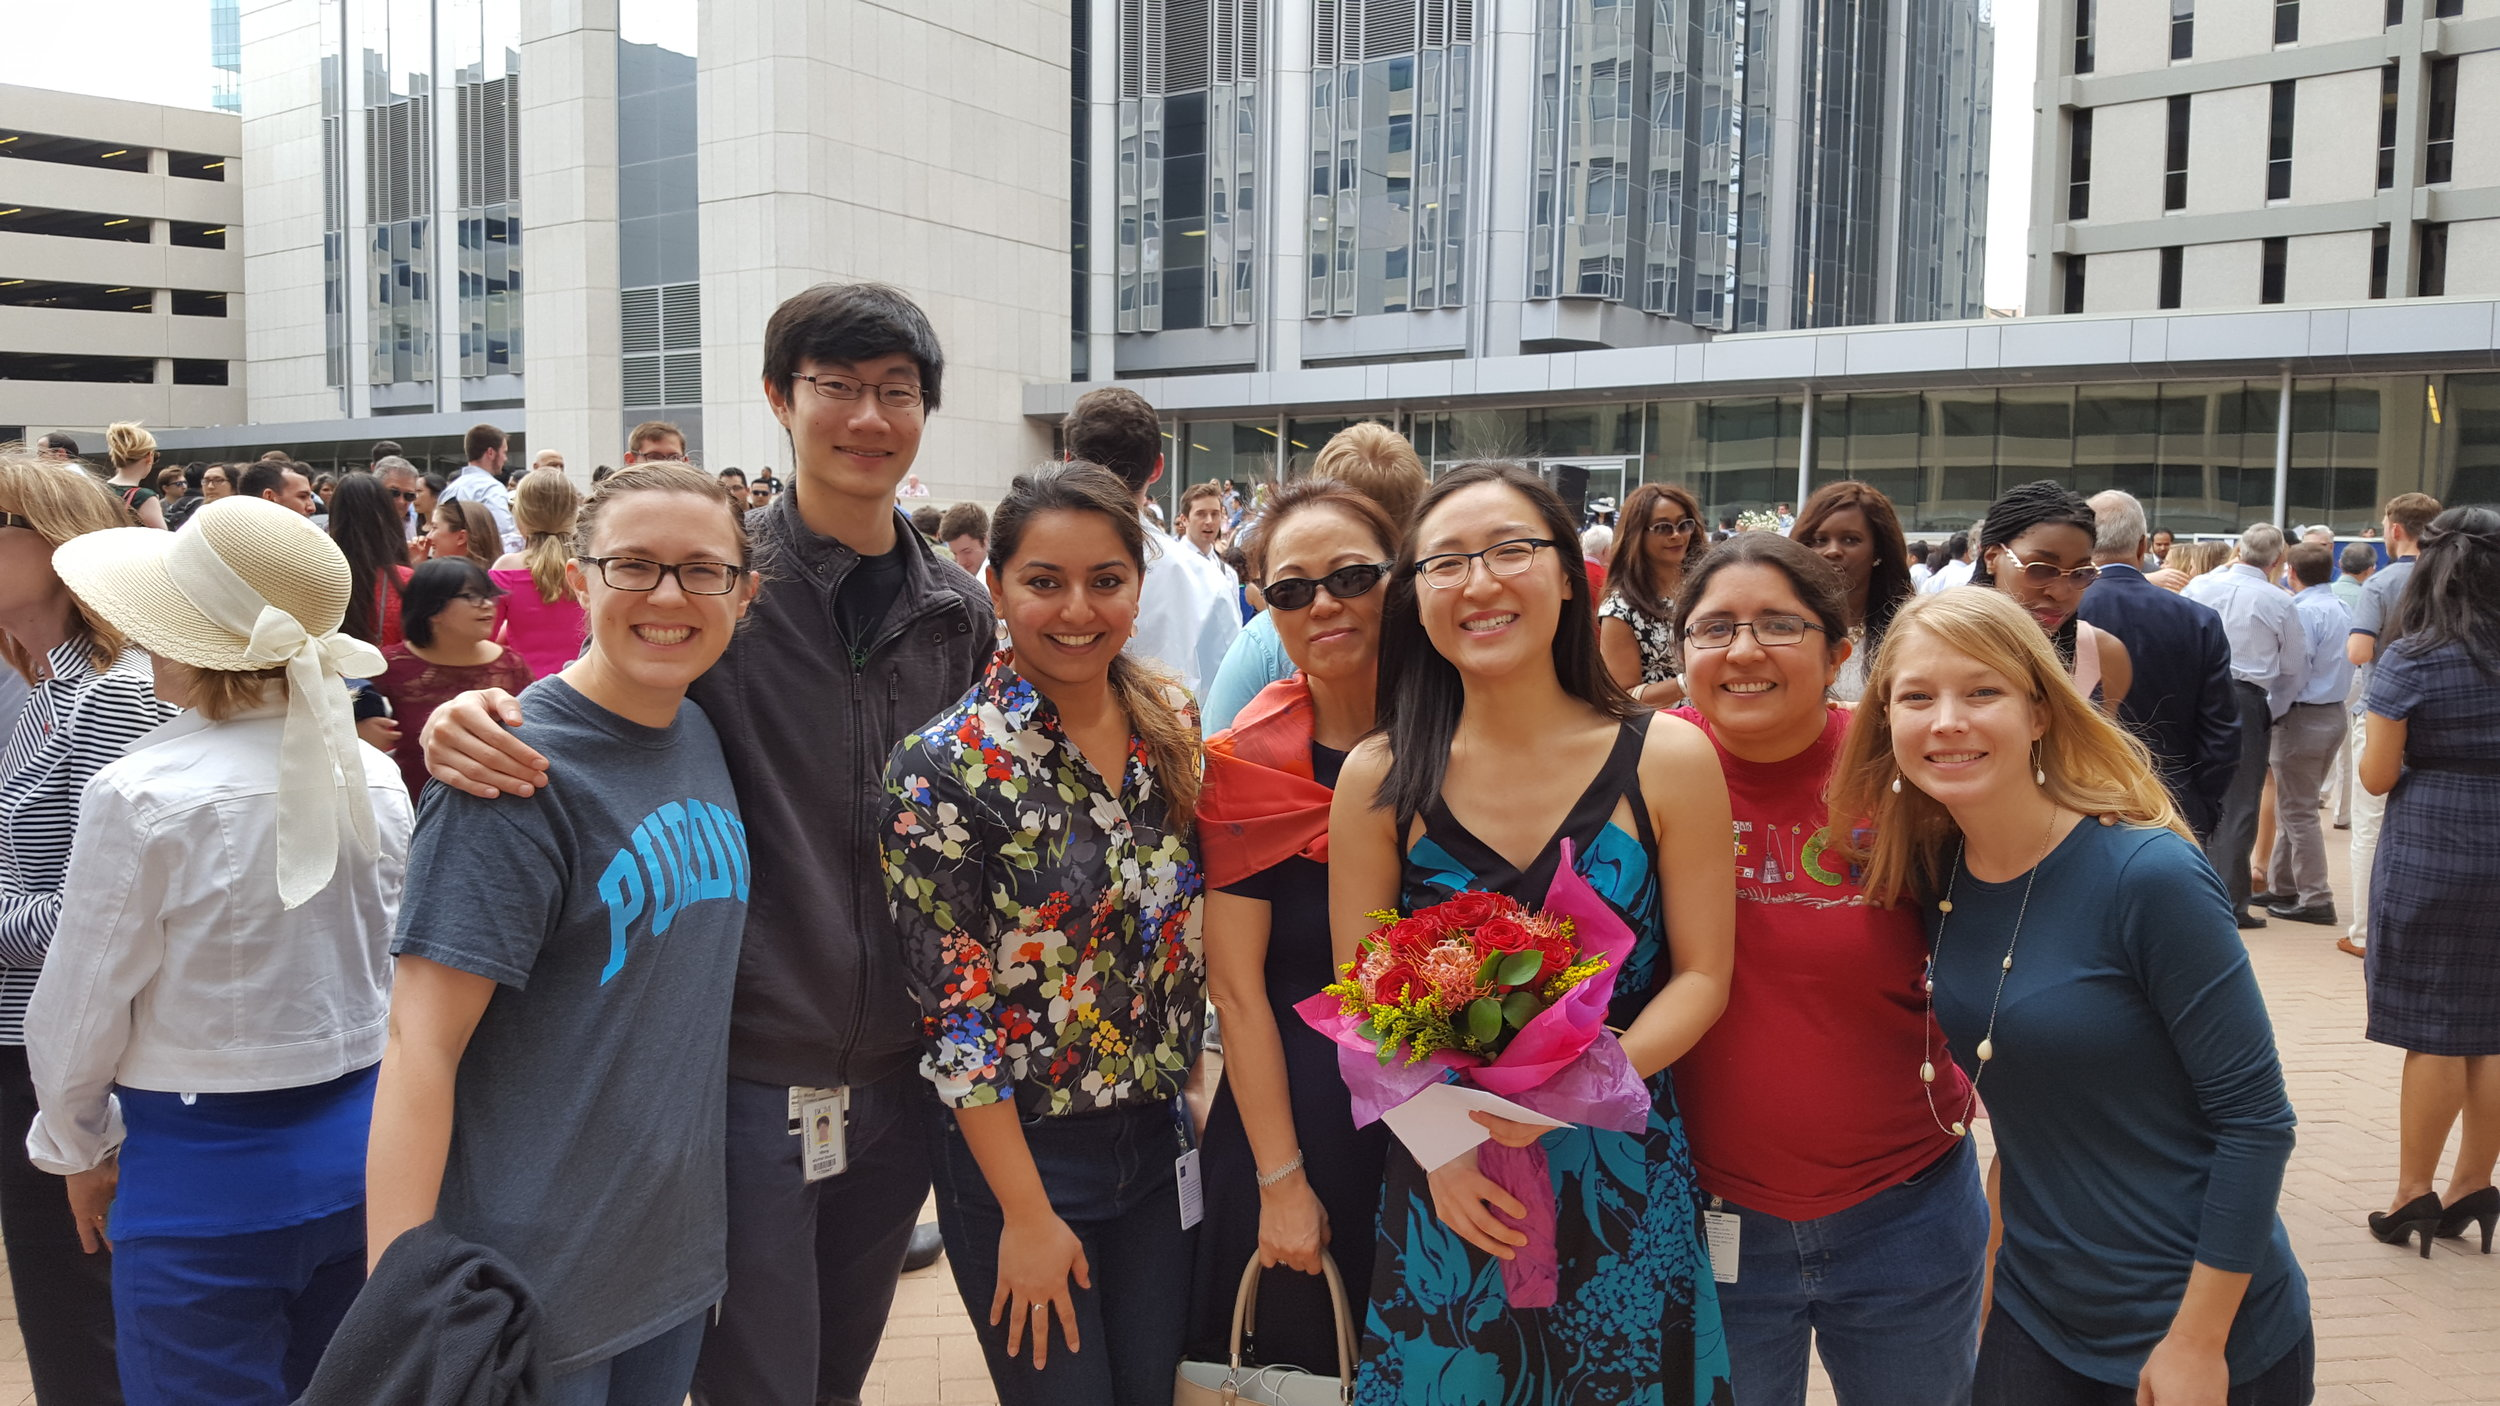 Westbrook lab members celebrating Tiffany getting matched to the Internal Medicine residency program at UPenn (2016).